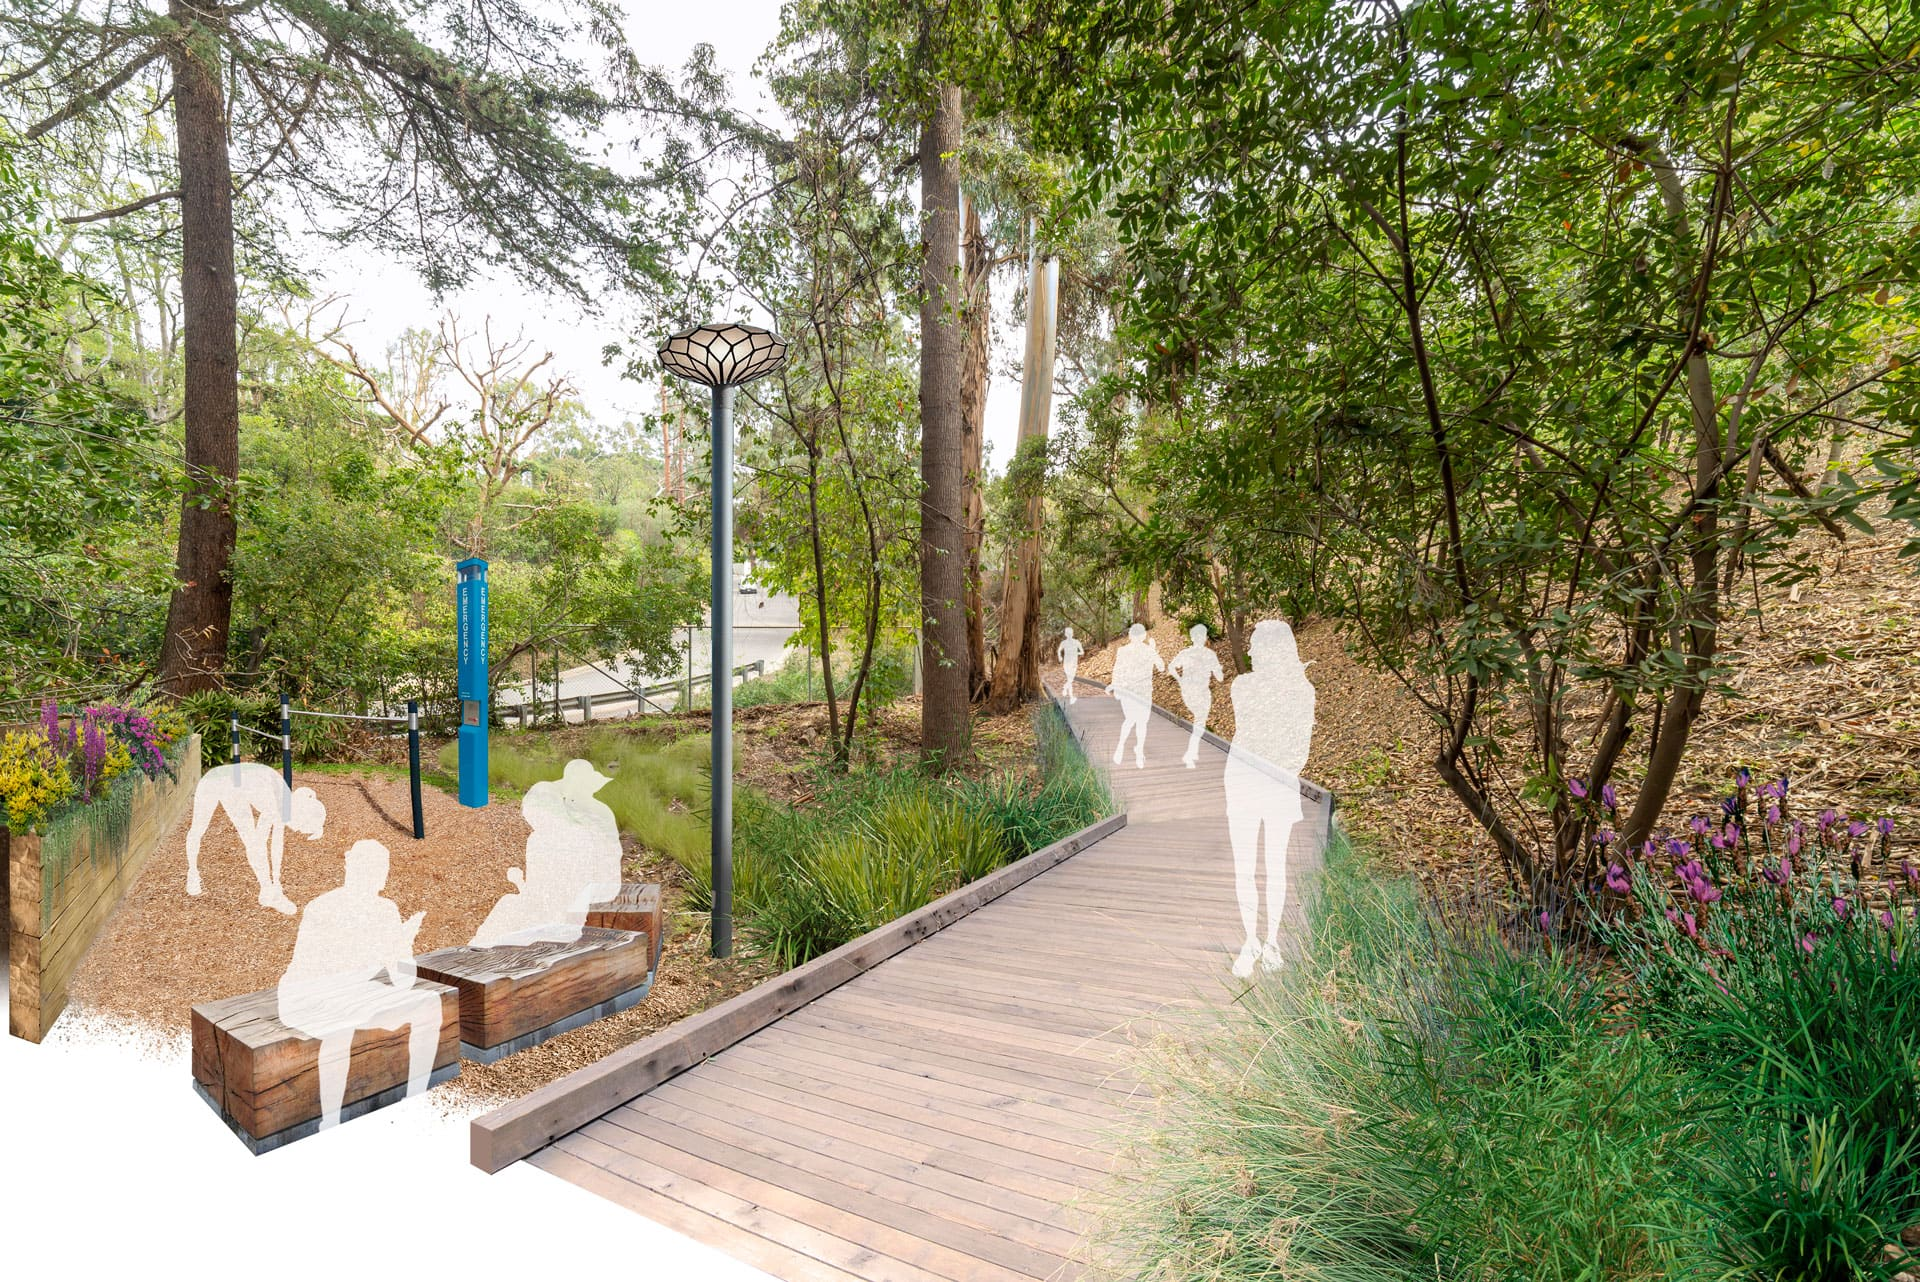 Rendered view of forest boardwalk and rest/exercise nook with benches and exercise equipment.